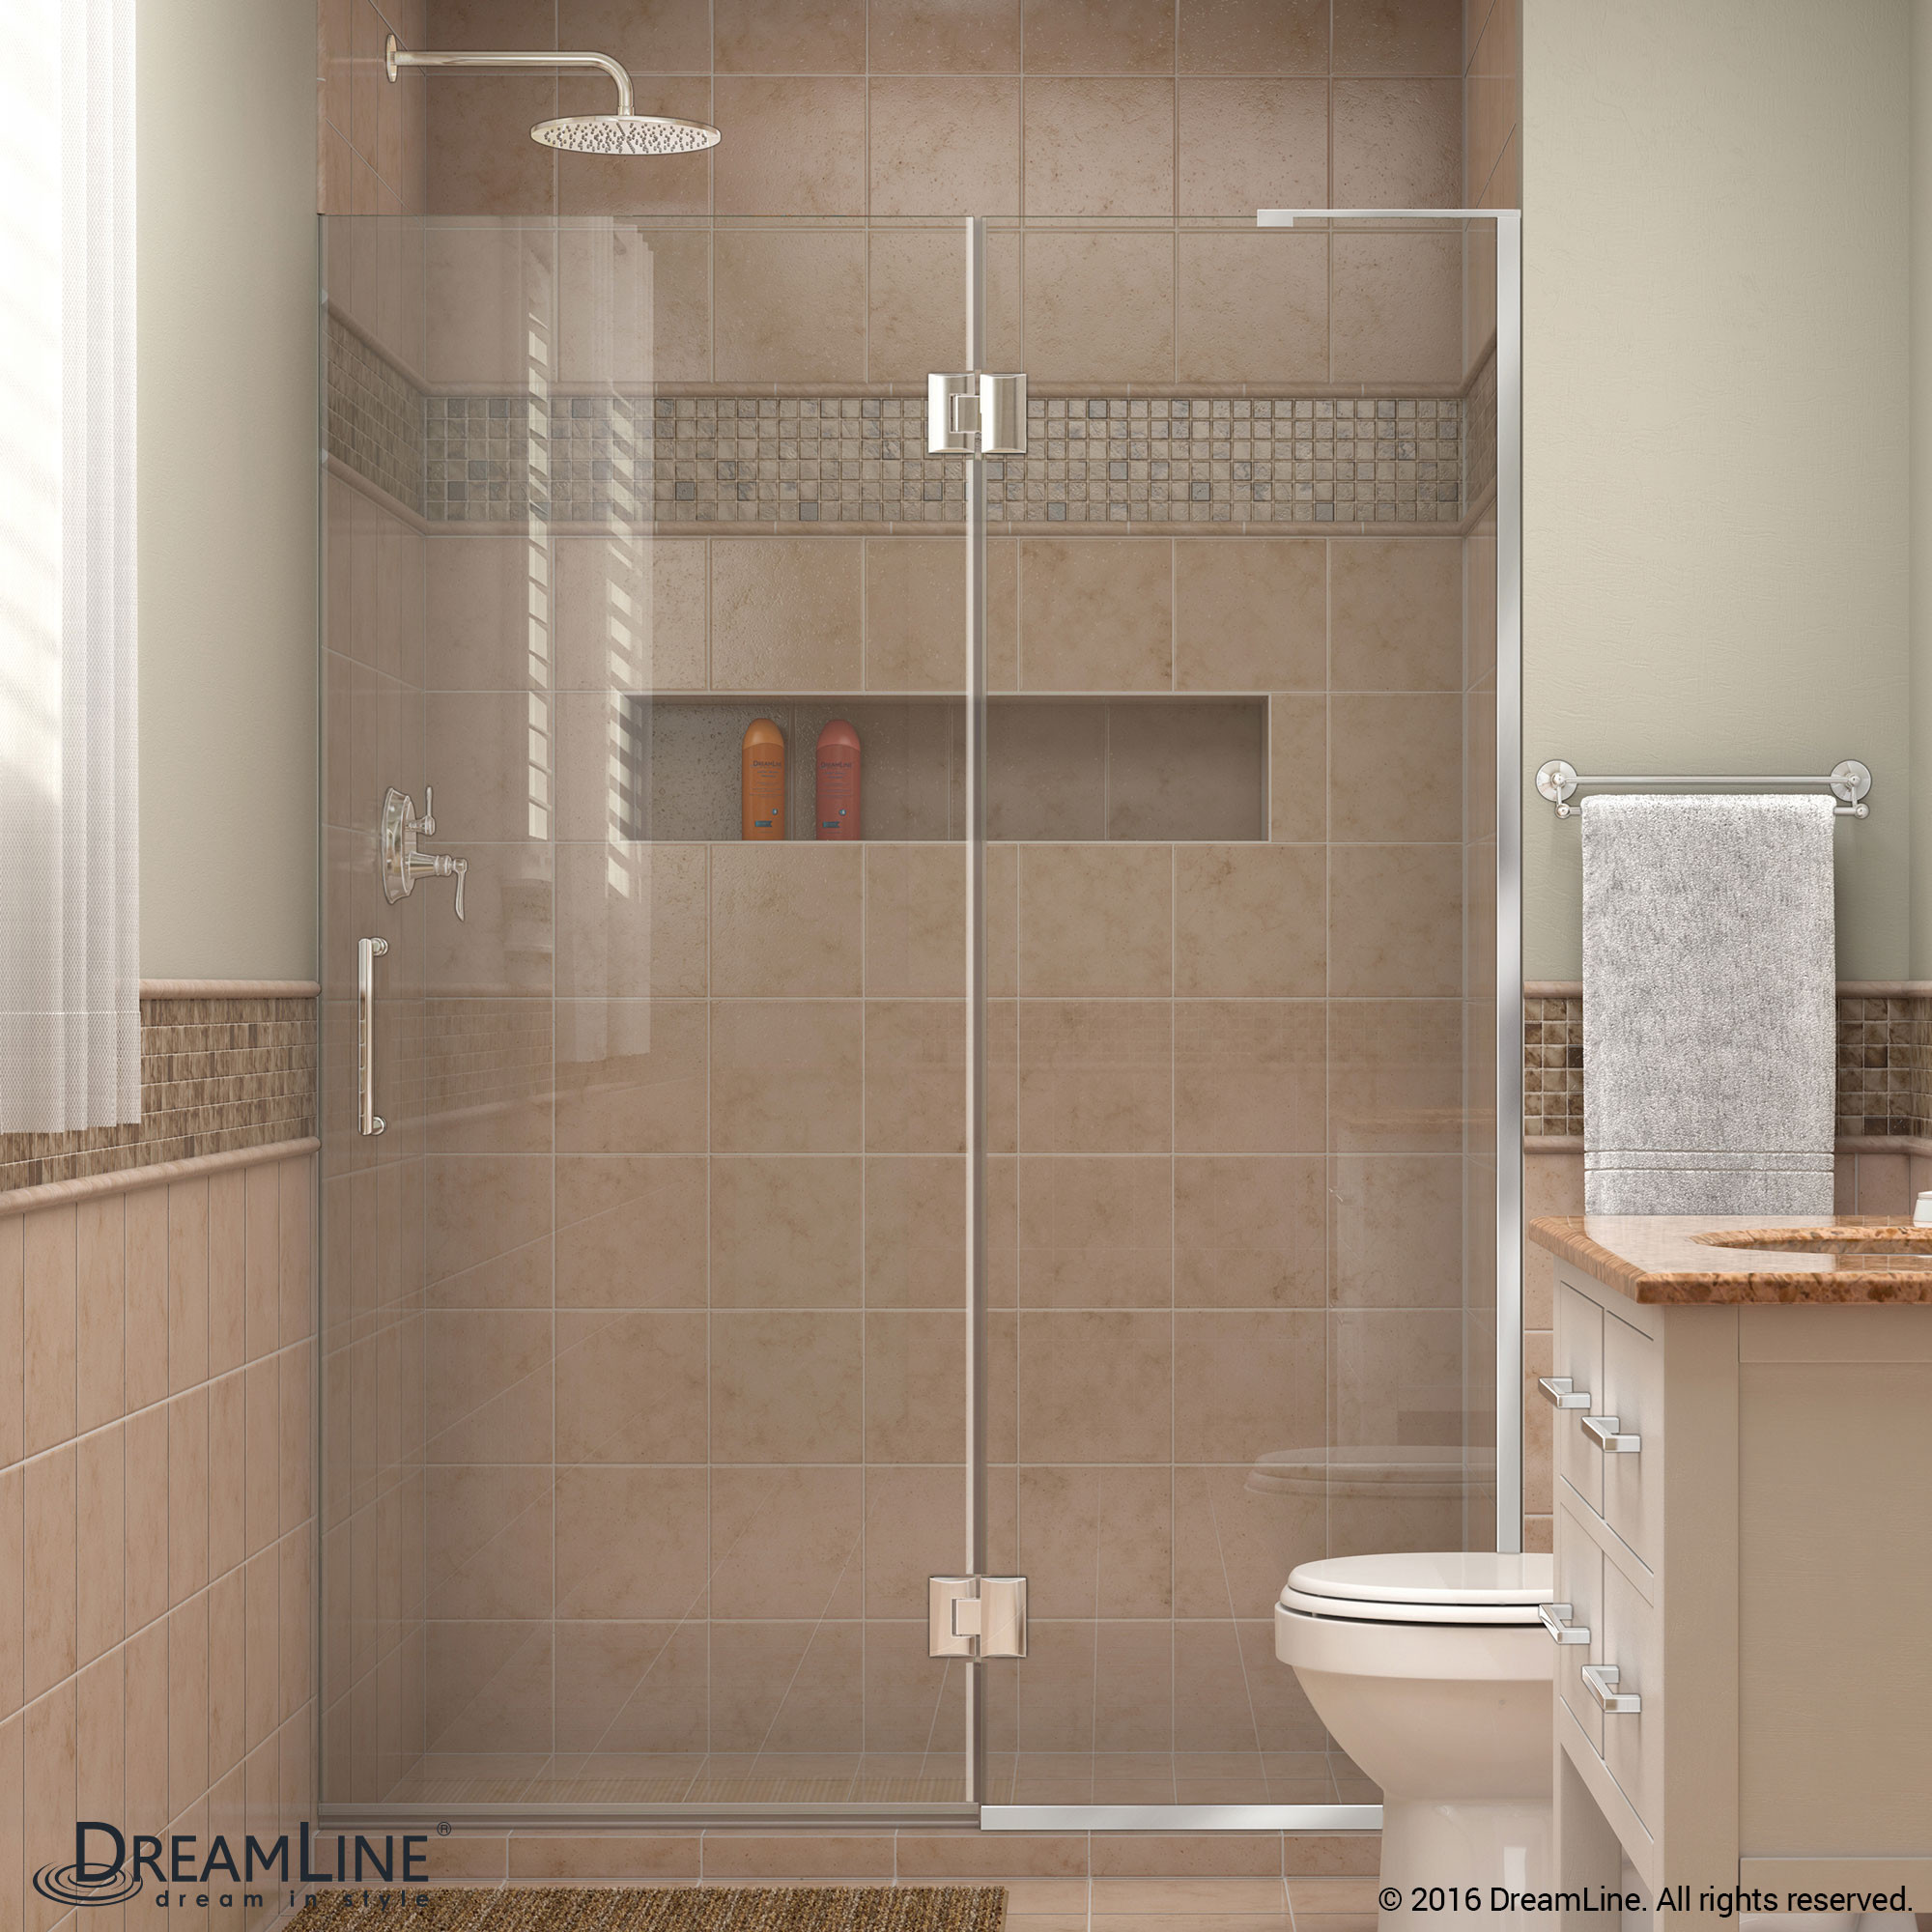 DreamLine D33072R-01 Chrome Unidoor-X Hinged Shower Door With Right-wall Bracket